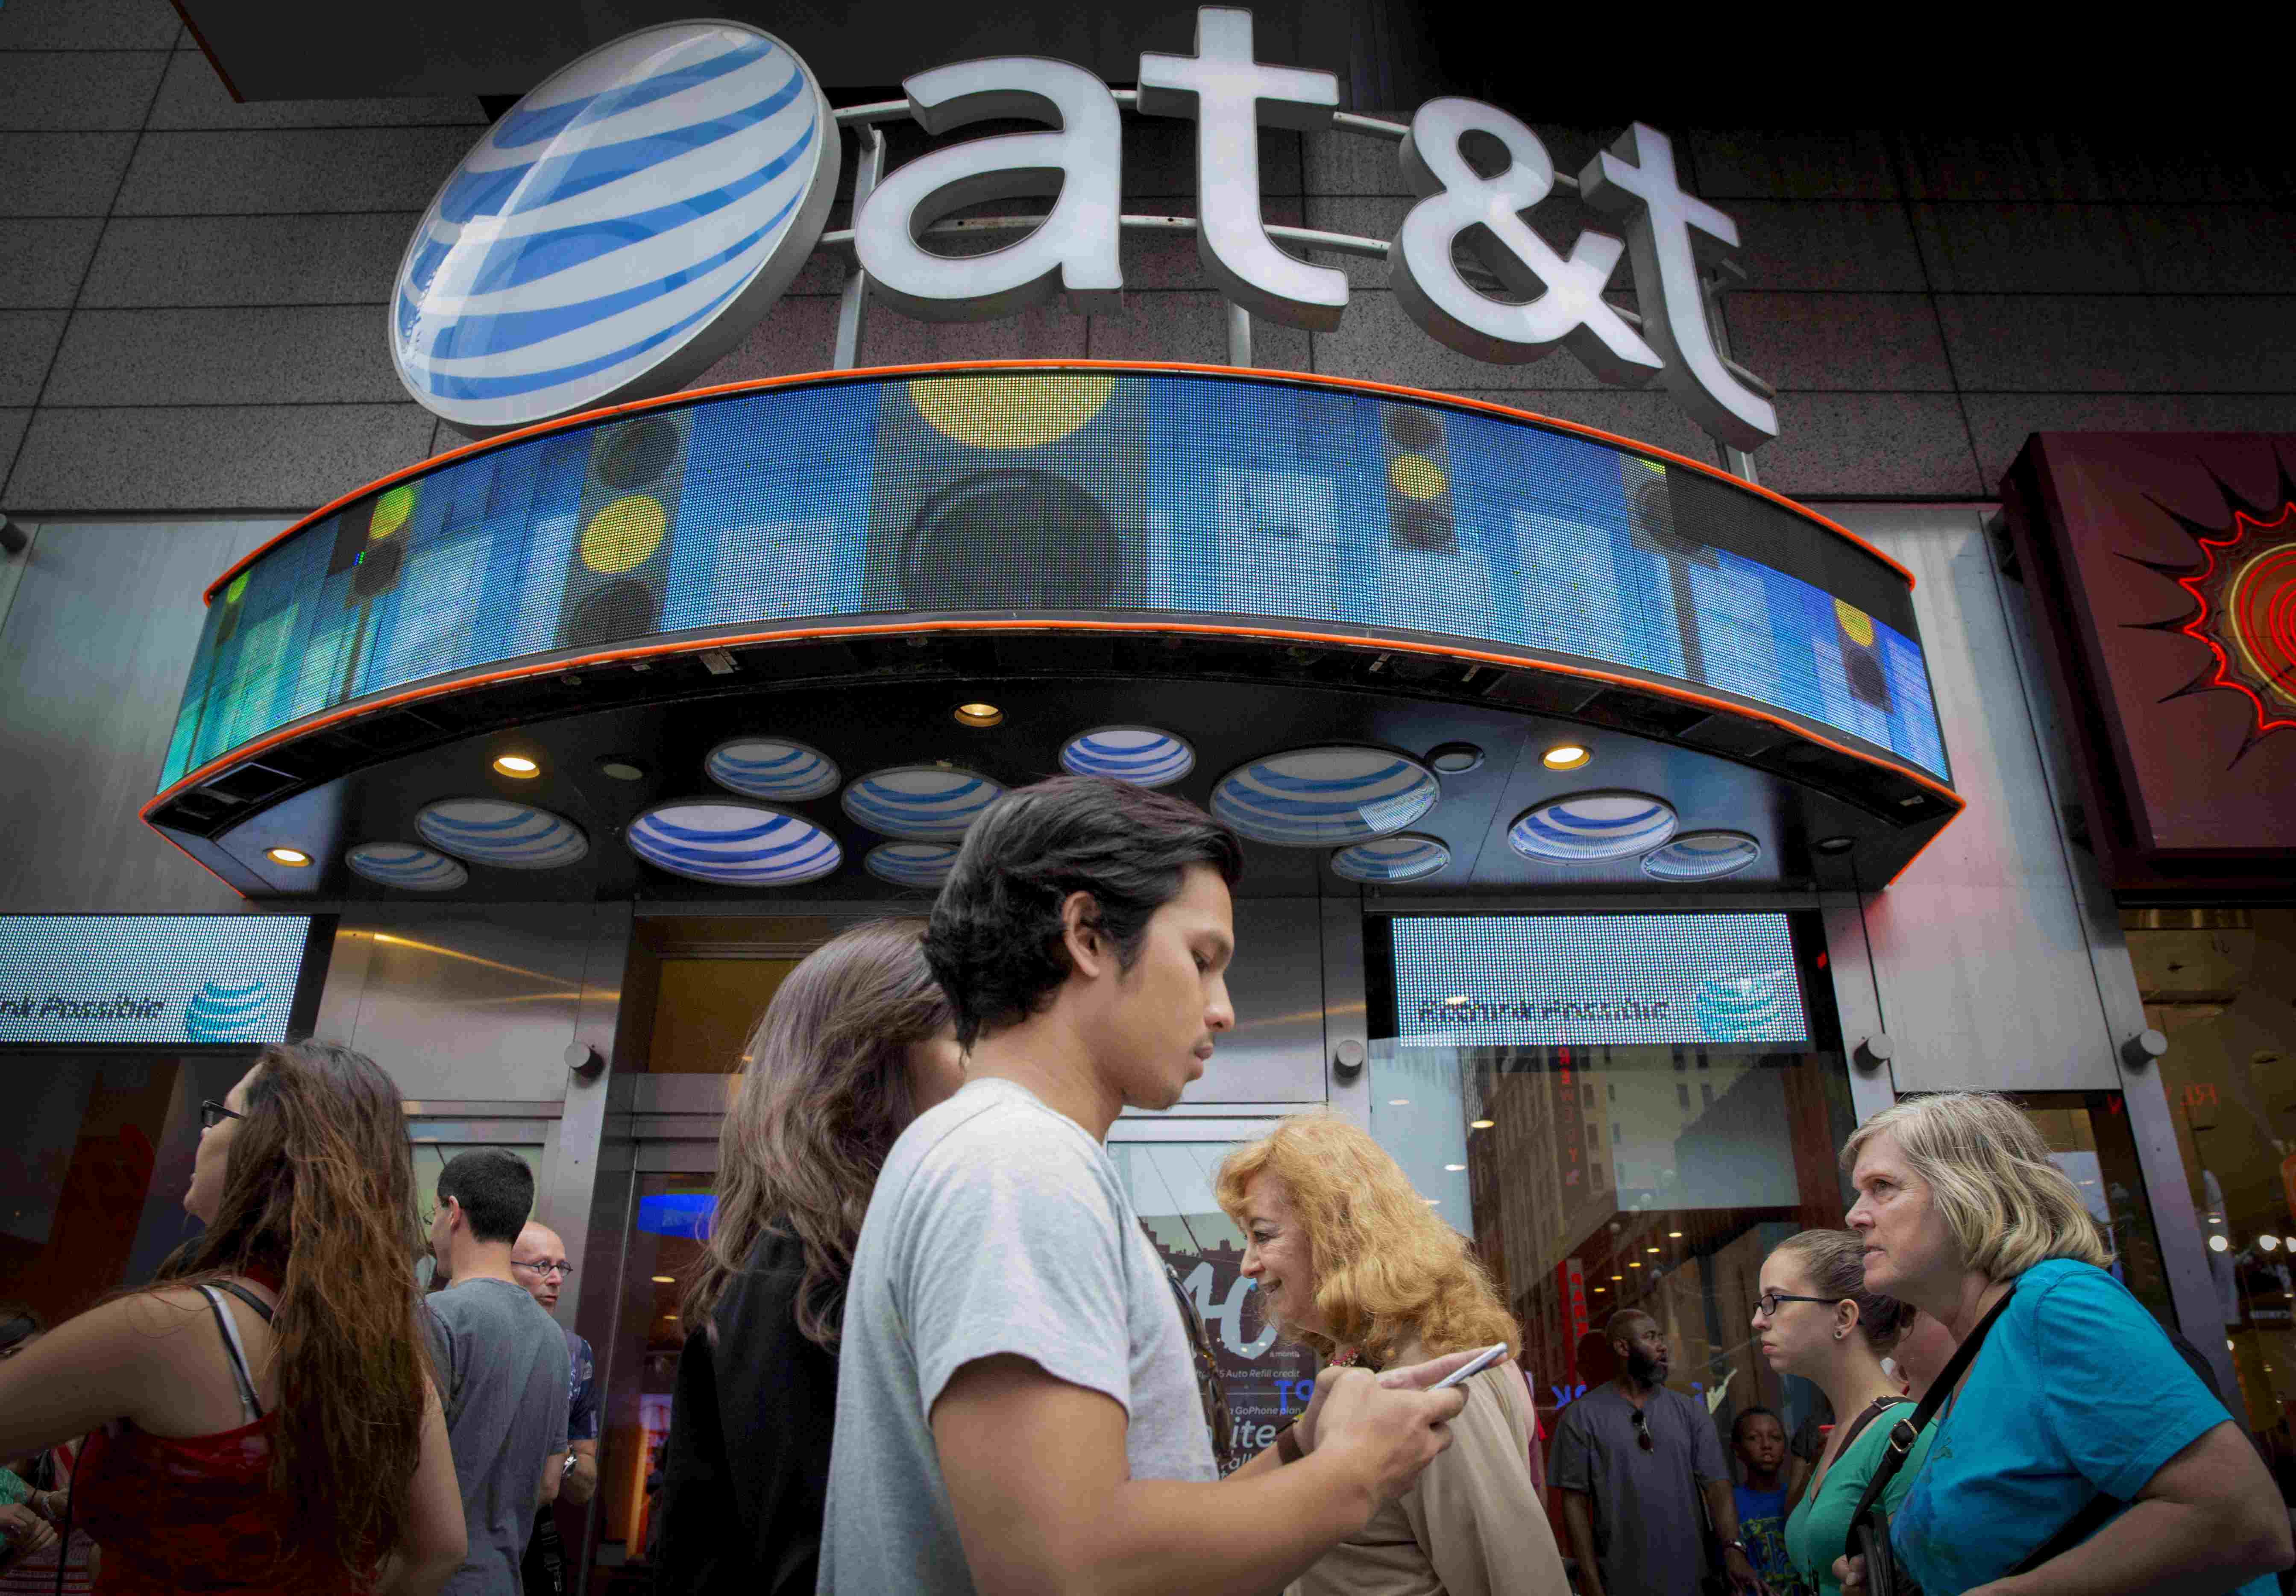 People walk past the AT&T store in New York's Times Square, in this June 17, 2015 file photo.  AT&T Inc reported a better-than-expected quarterly profit Thursday, as the second largest US Wireless carrier added post-paid customers. Photo: Reuters/ File